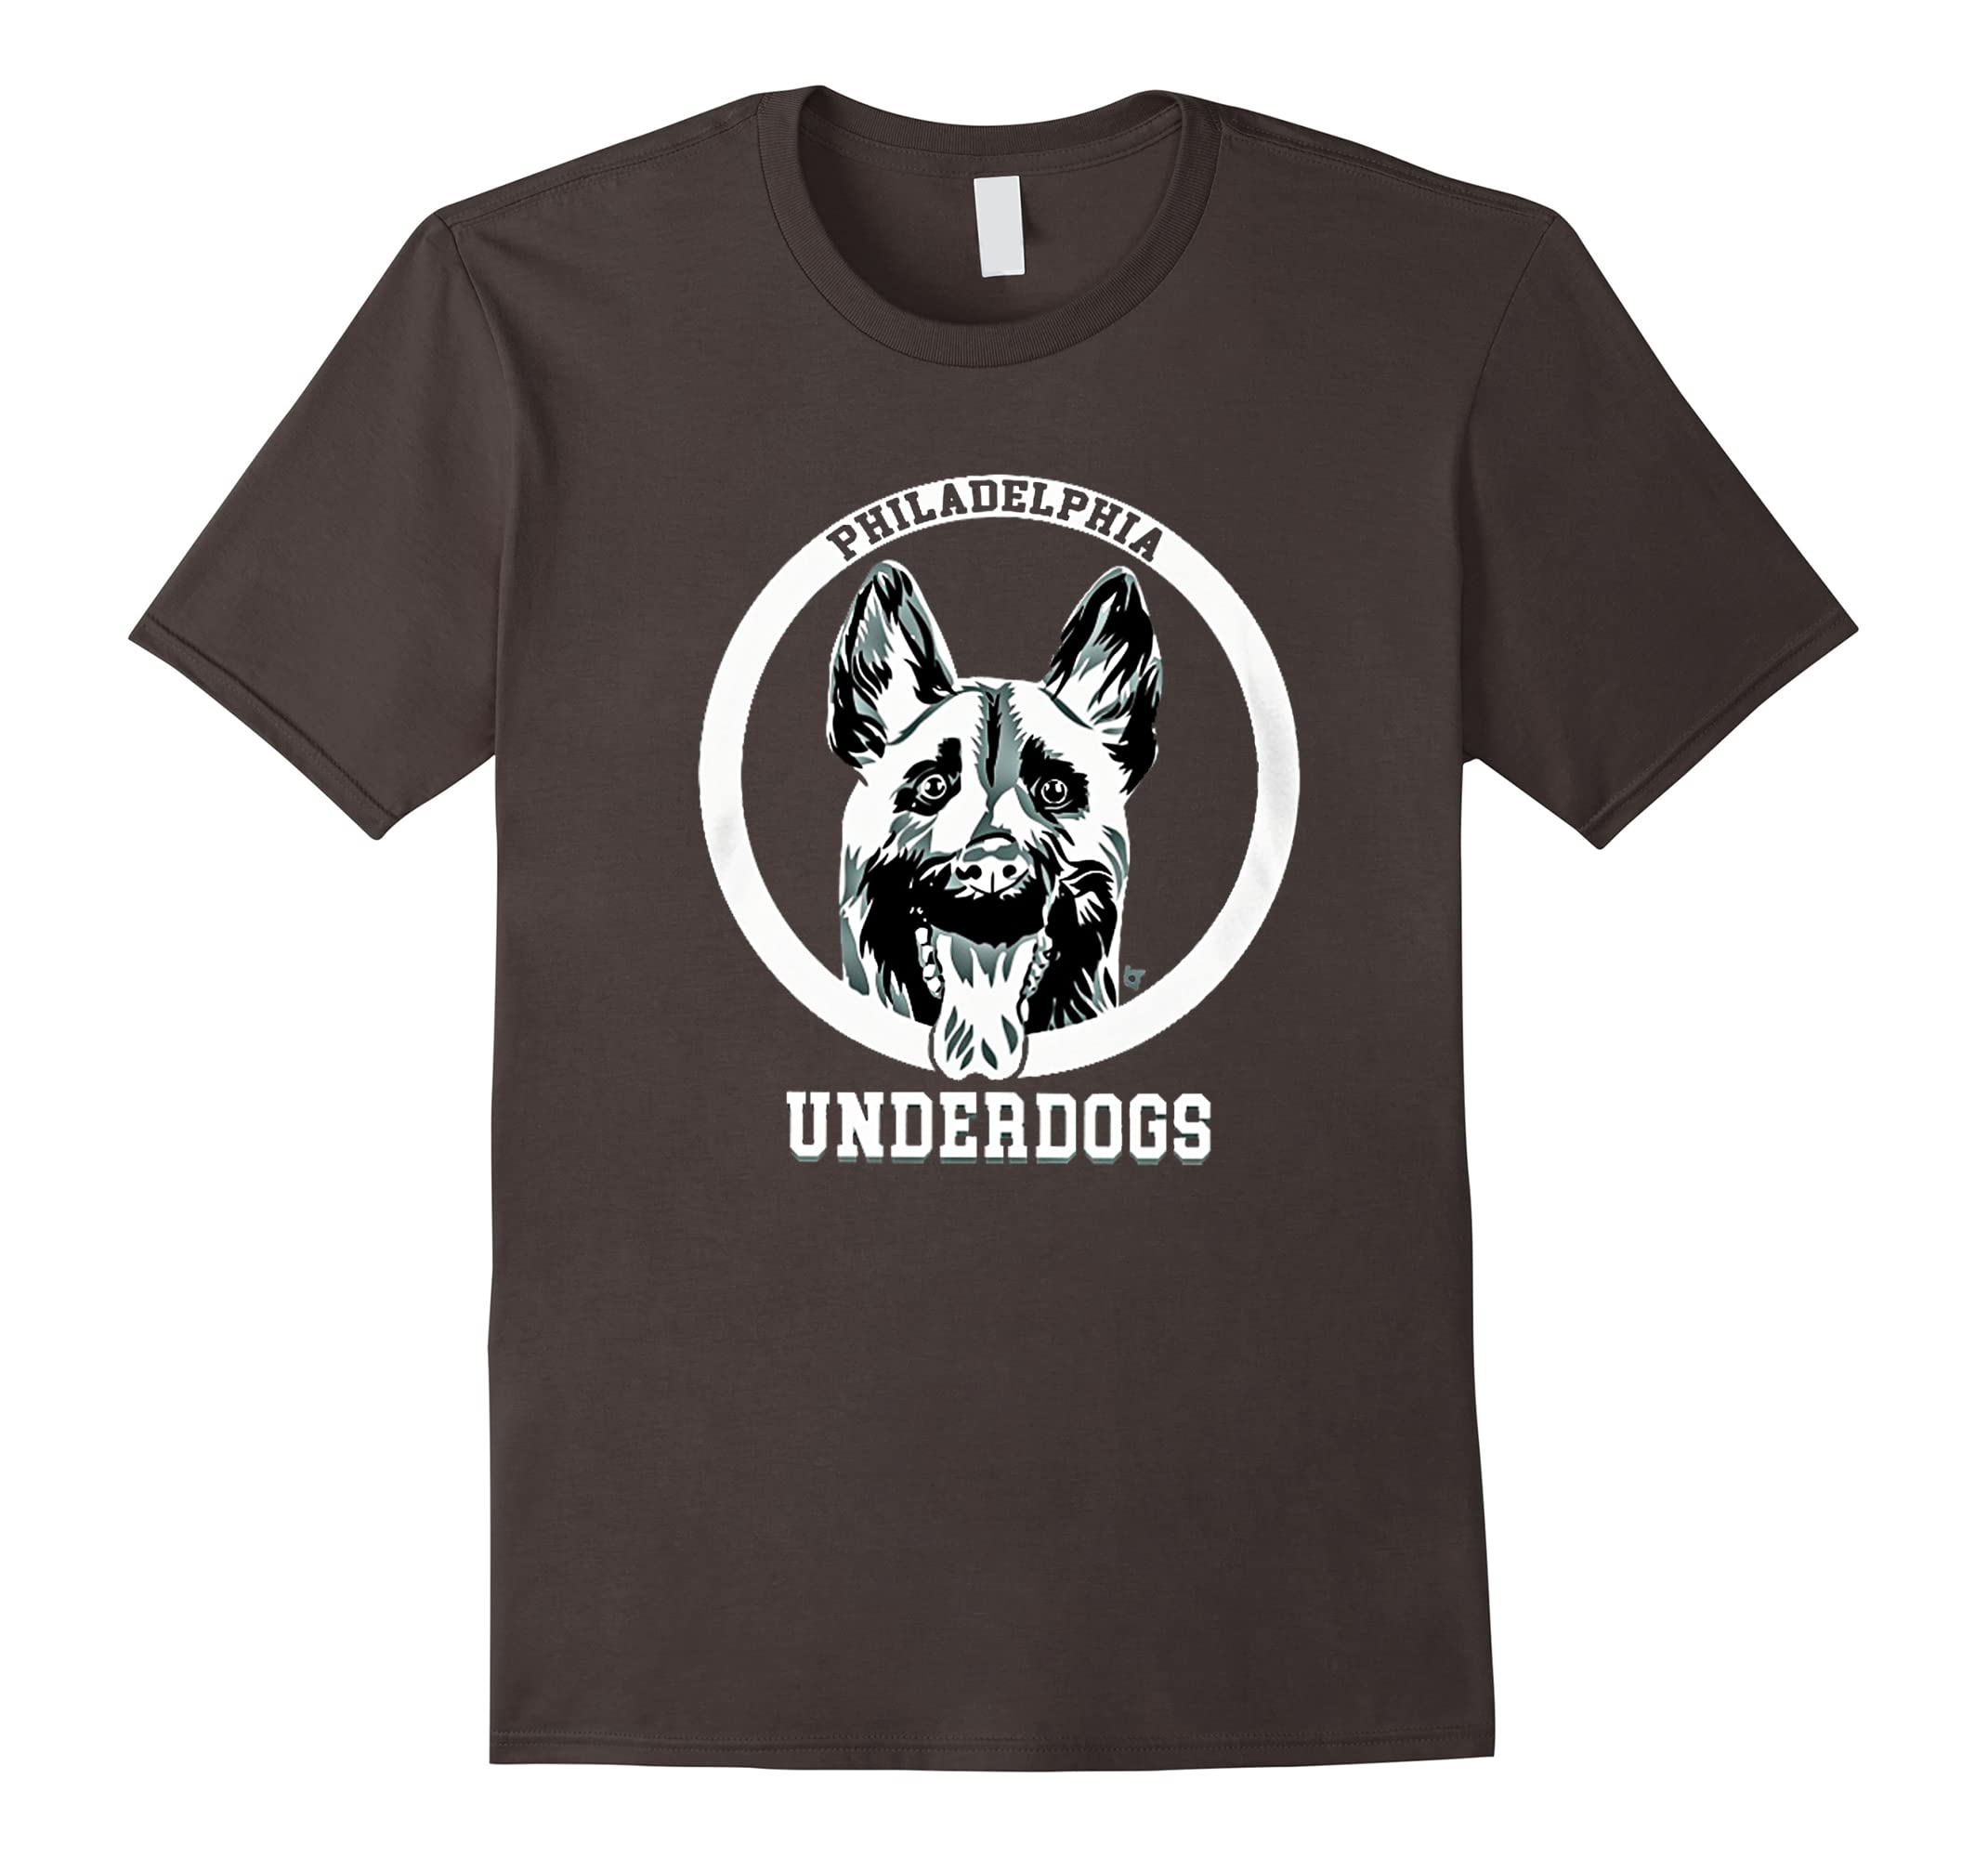 info for 99f28 bc831 Eagles Underdog T-Shirt-ah my shirt one gift